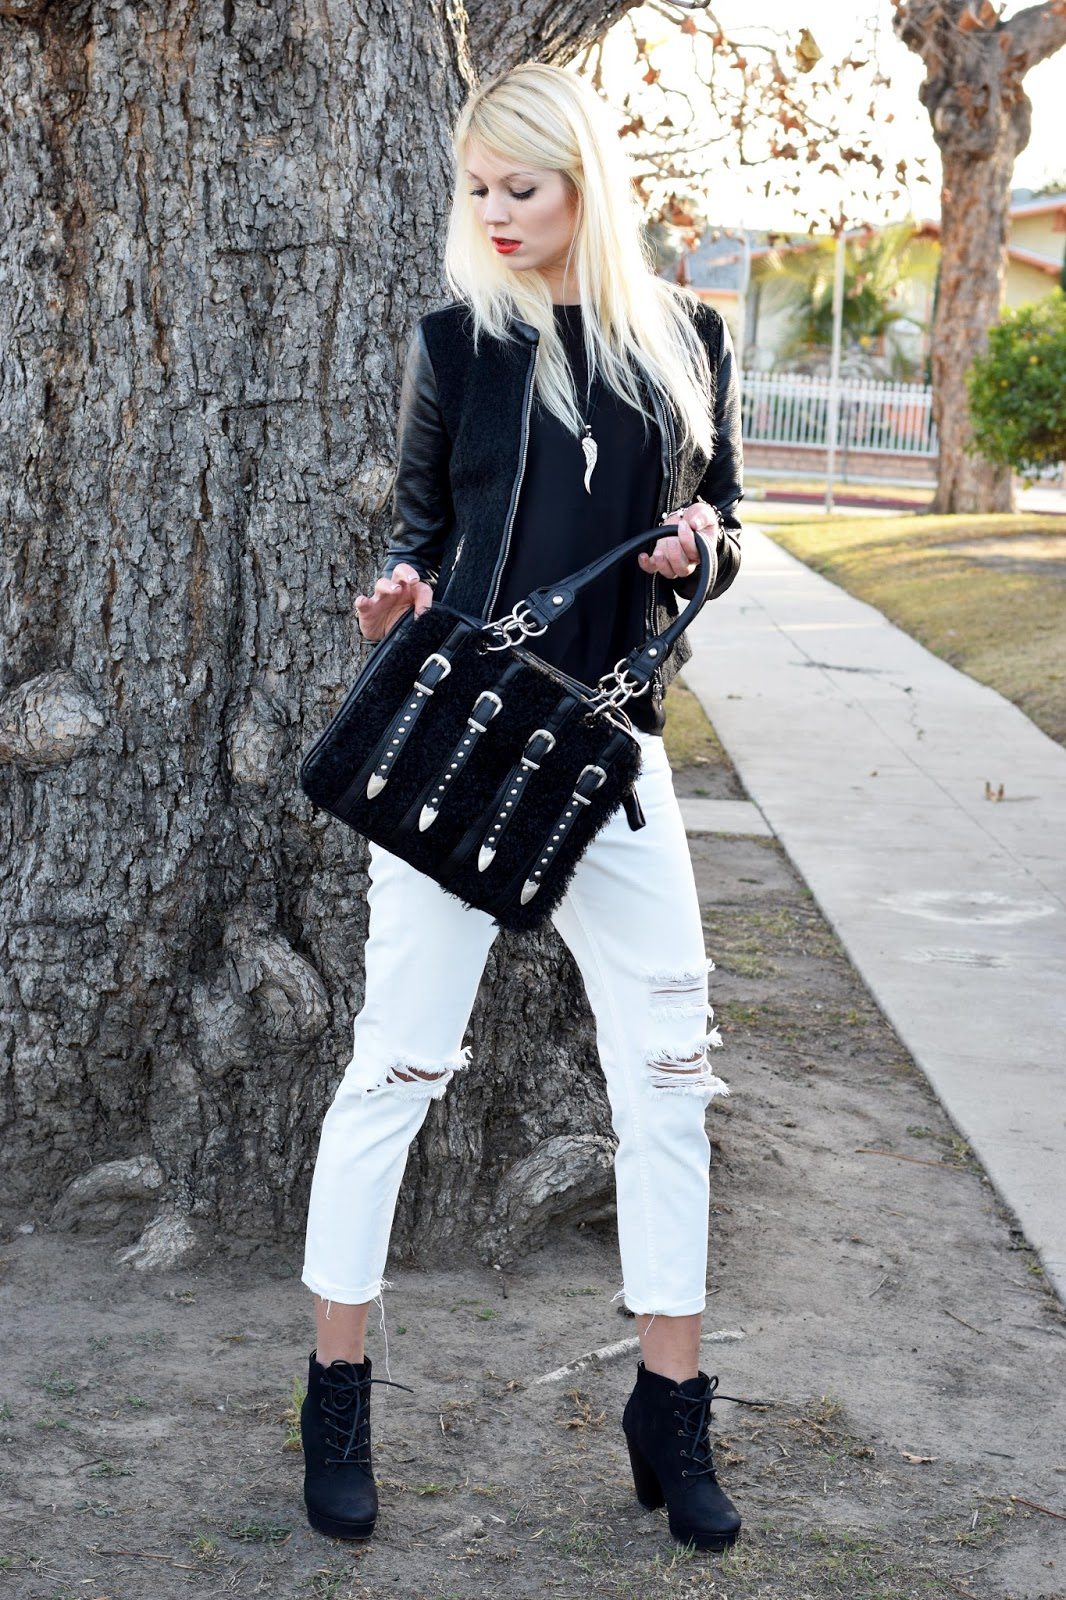 nicole lee, nicole lee purse, purse, fluffy purse, black and white, bw look, new year